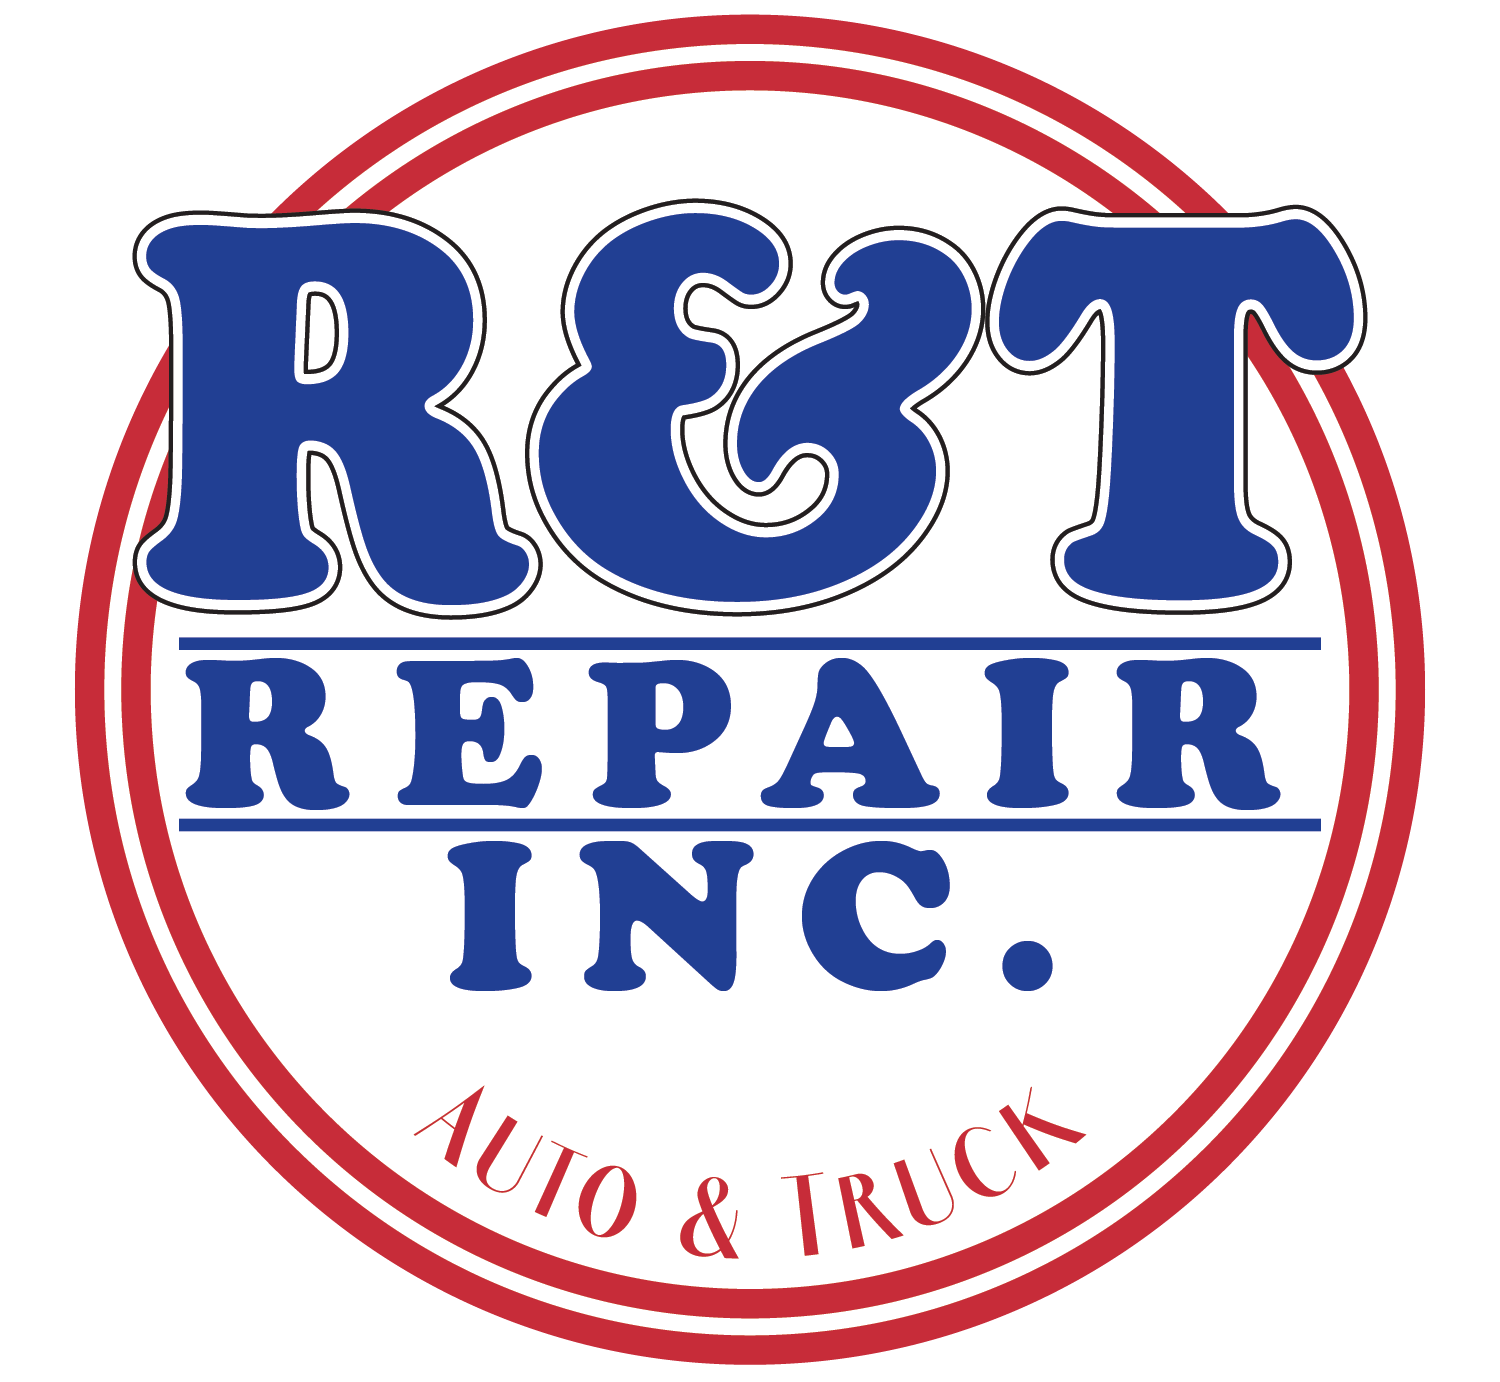 Repair Auto R T Repair Northern Arizona S Most Reliable And Trusted Auto Repair